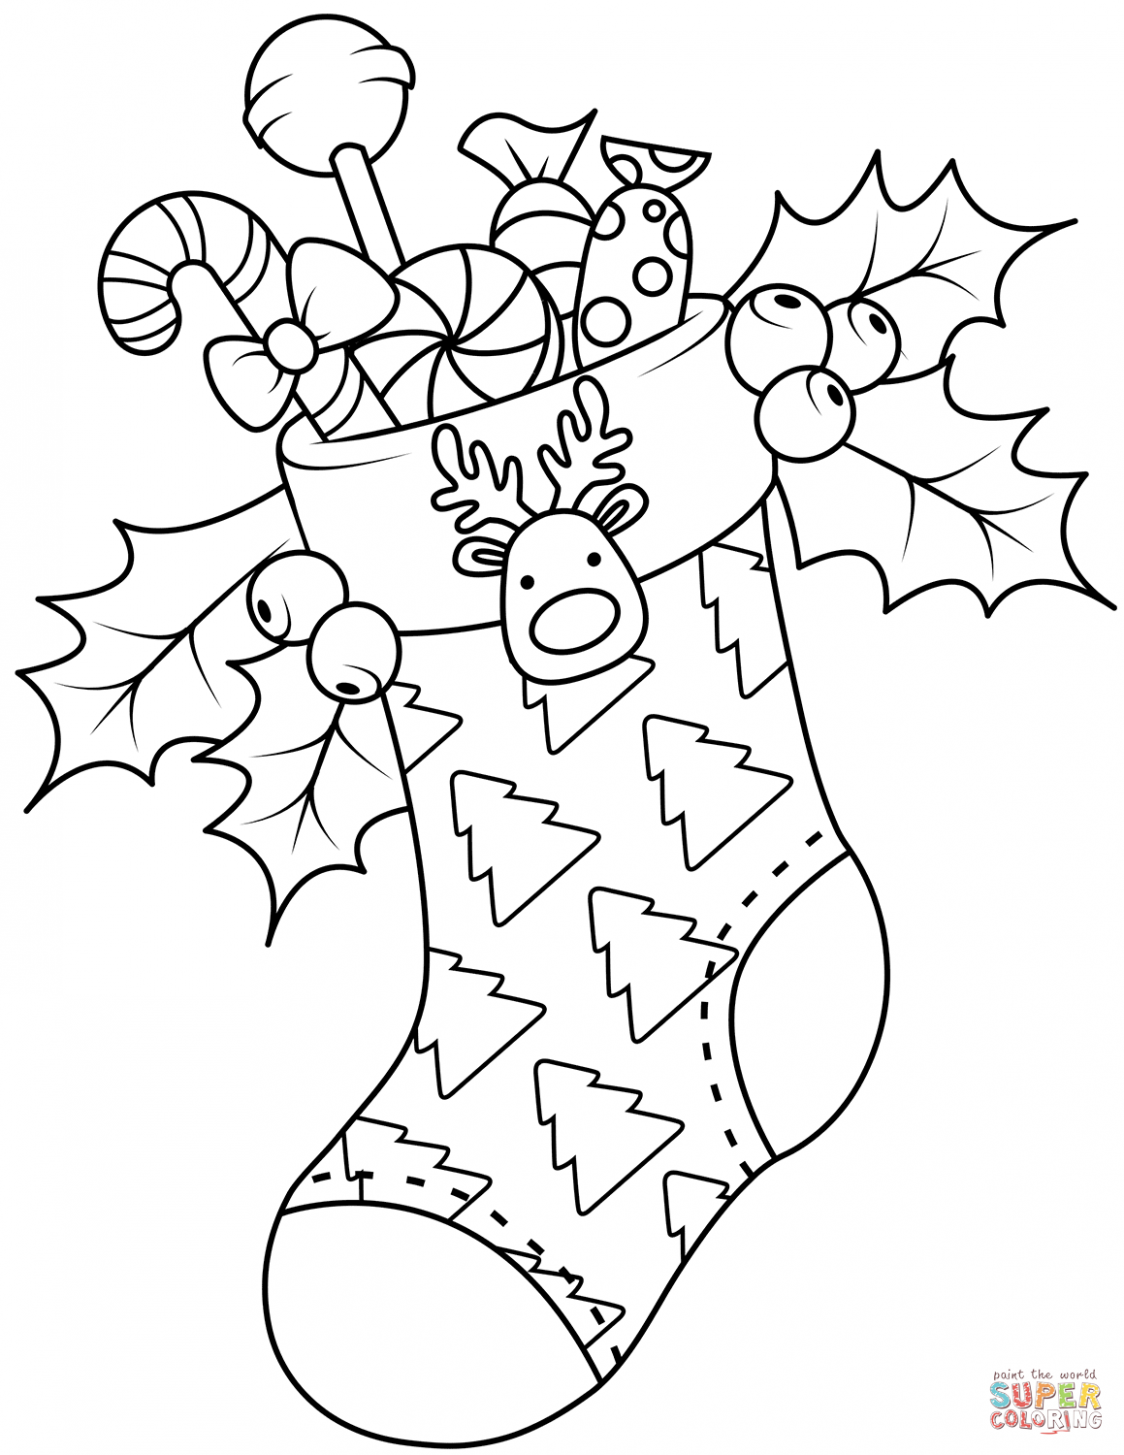 Christmas Stockings coloring pages | Free Coloring Pages